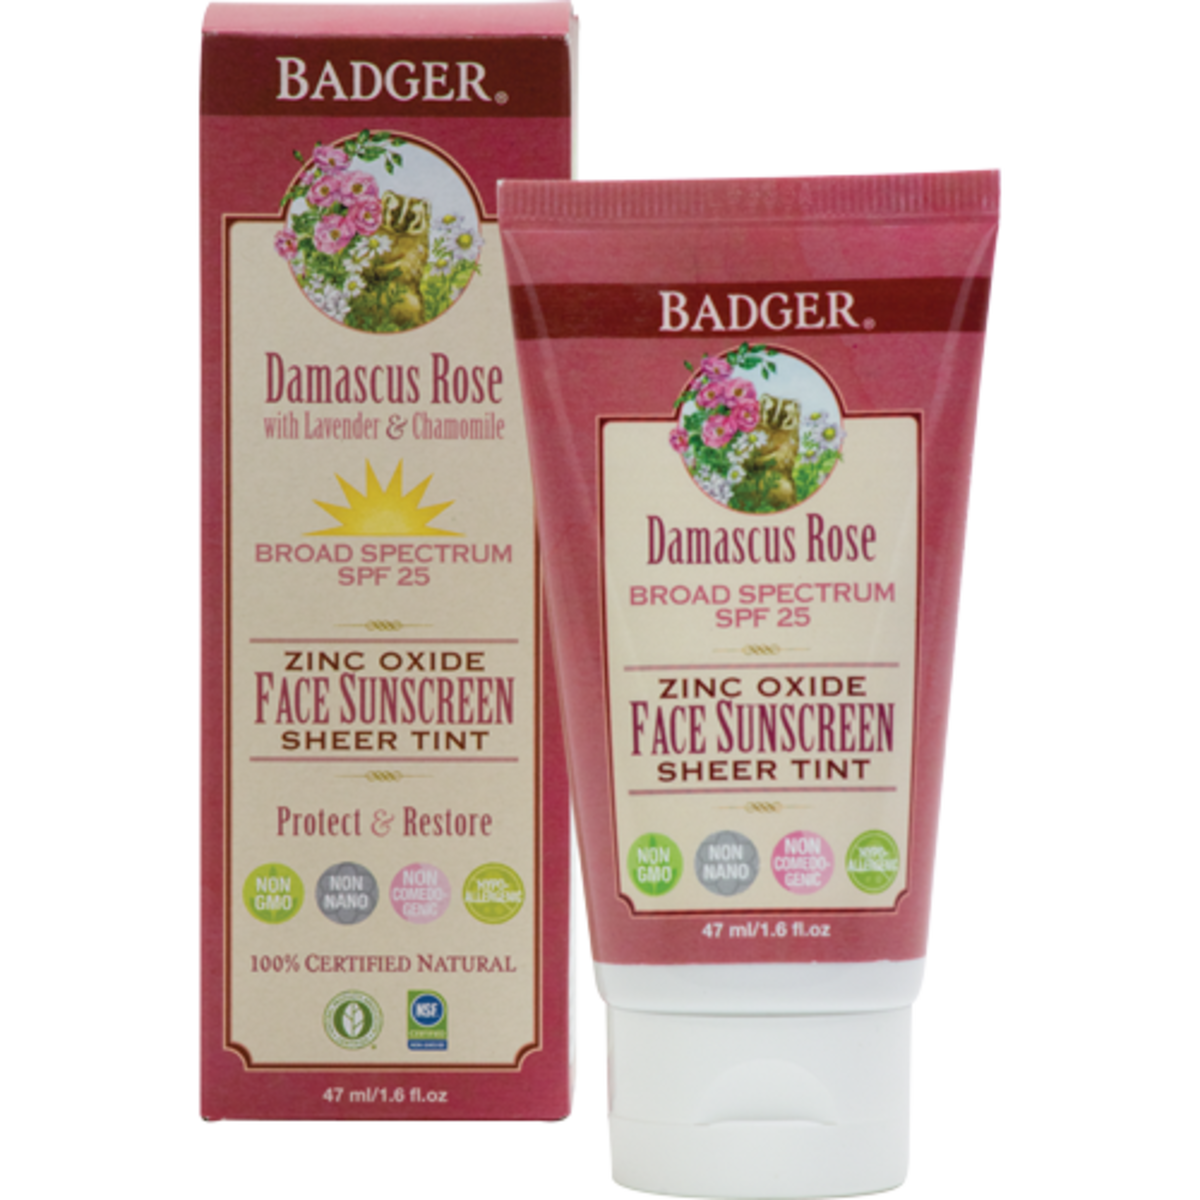 Badger Damascus Rose SPF 25 Sheer Tint Face Sunscreen Lotion